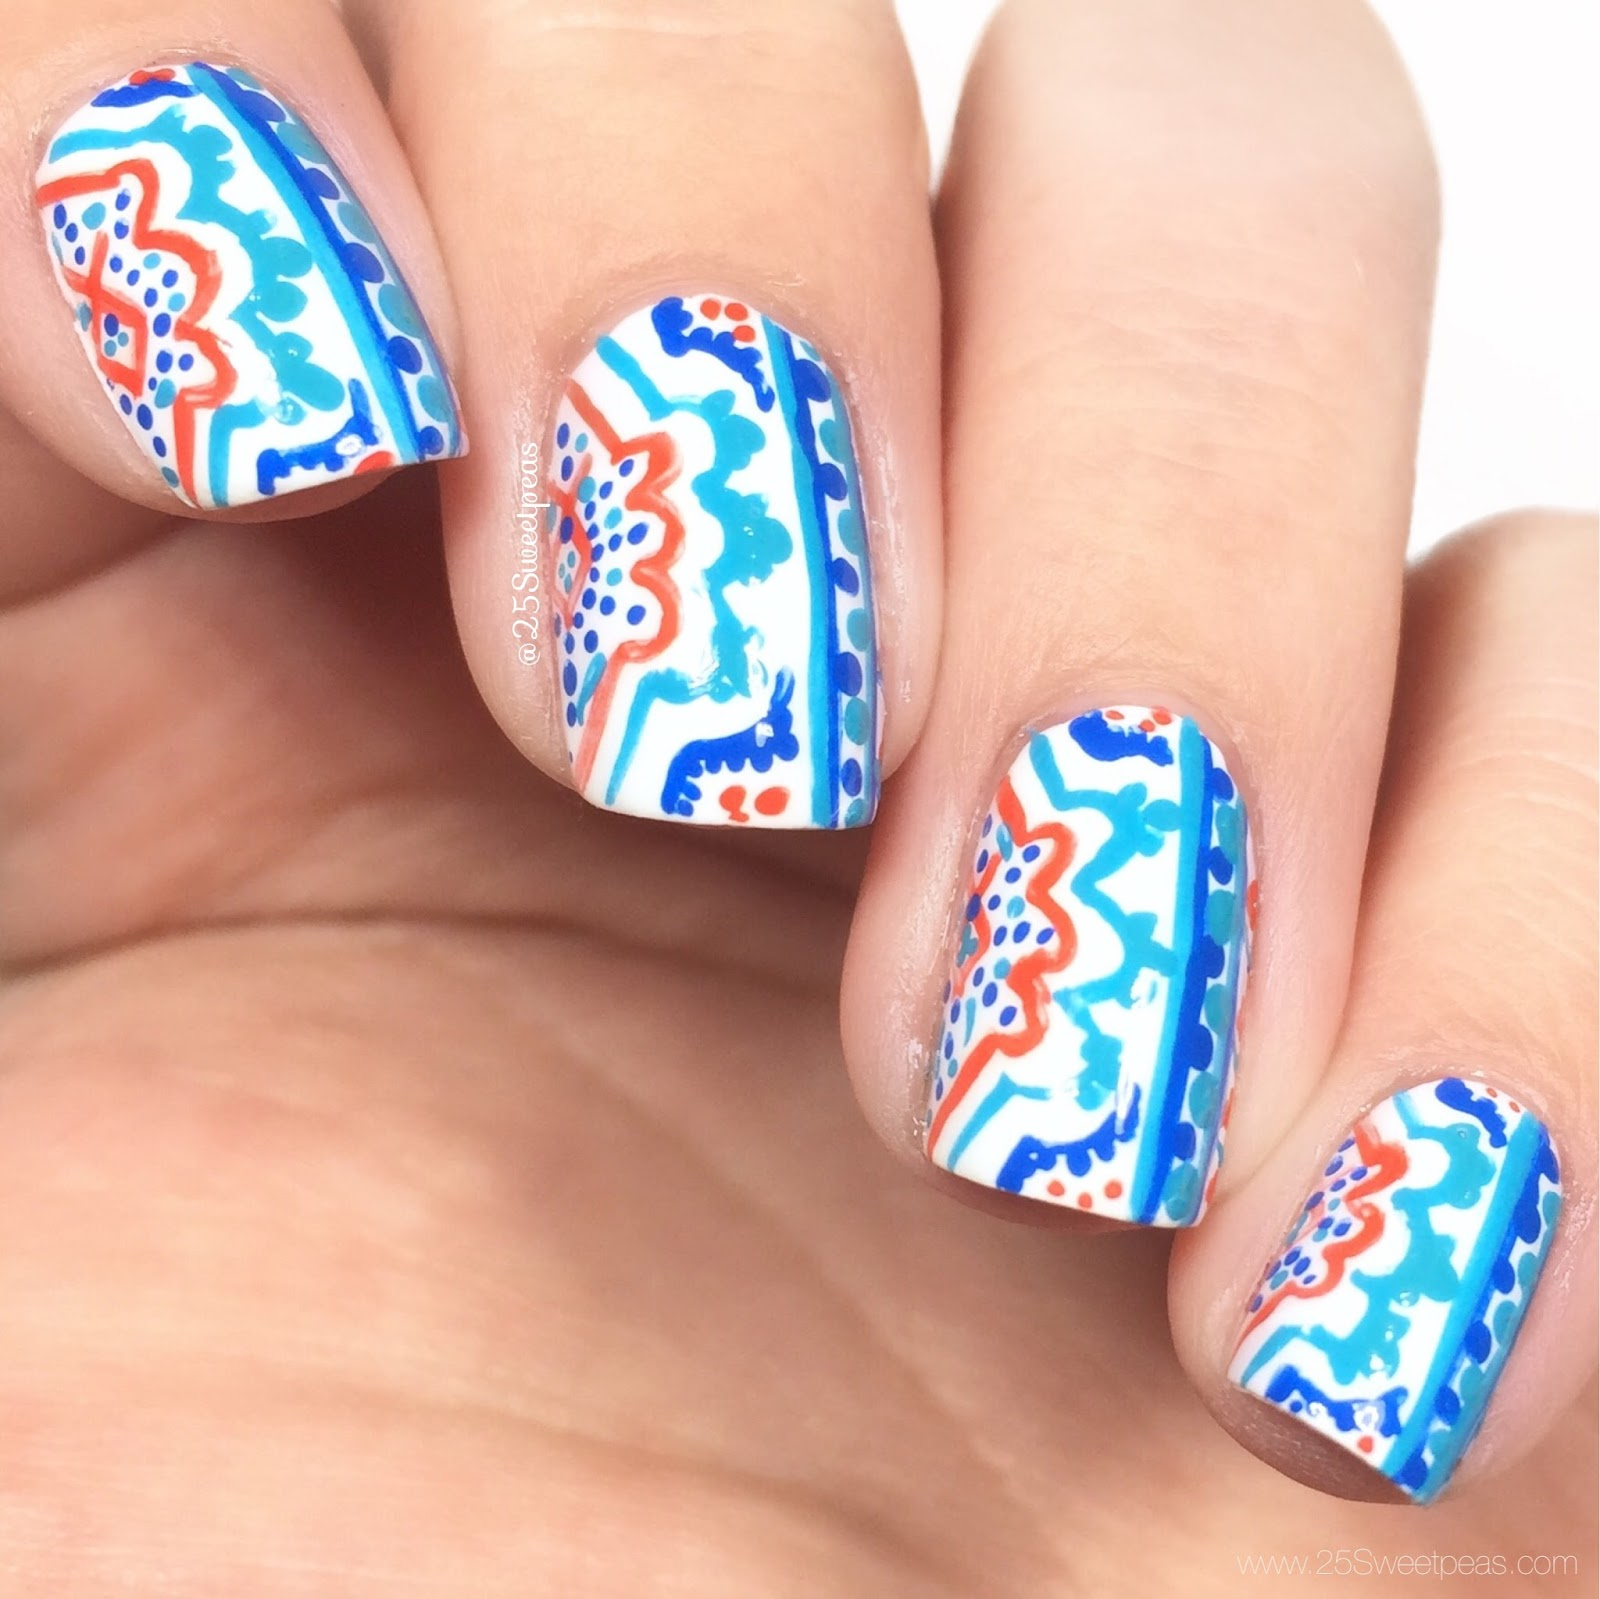 Moroccan Tile Inspired Nails 25 Sweetpeas